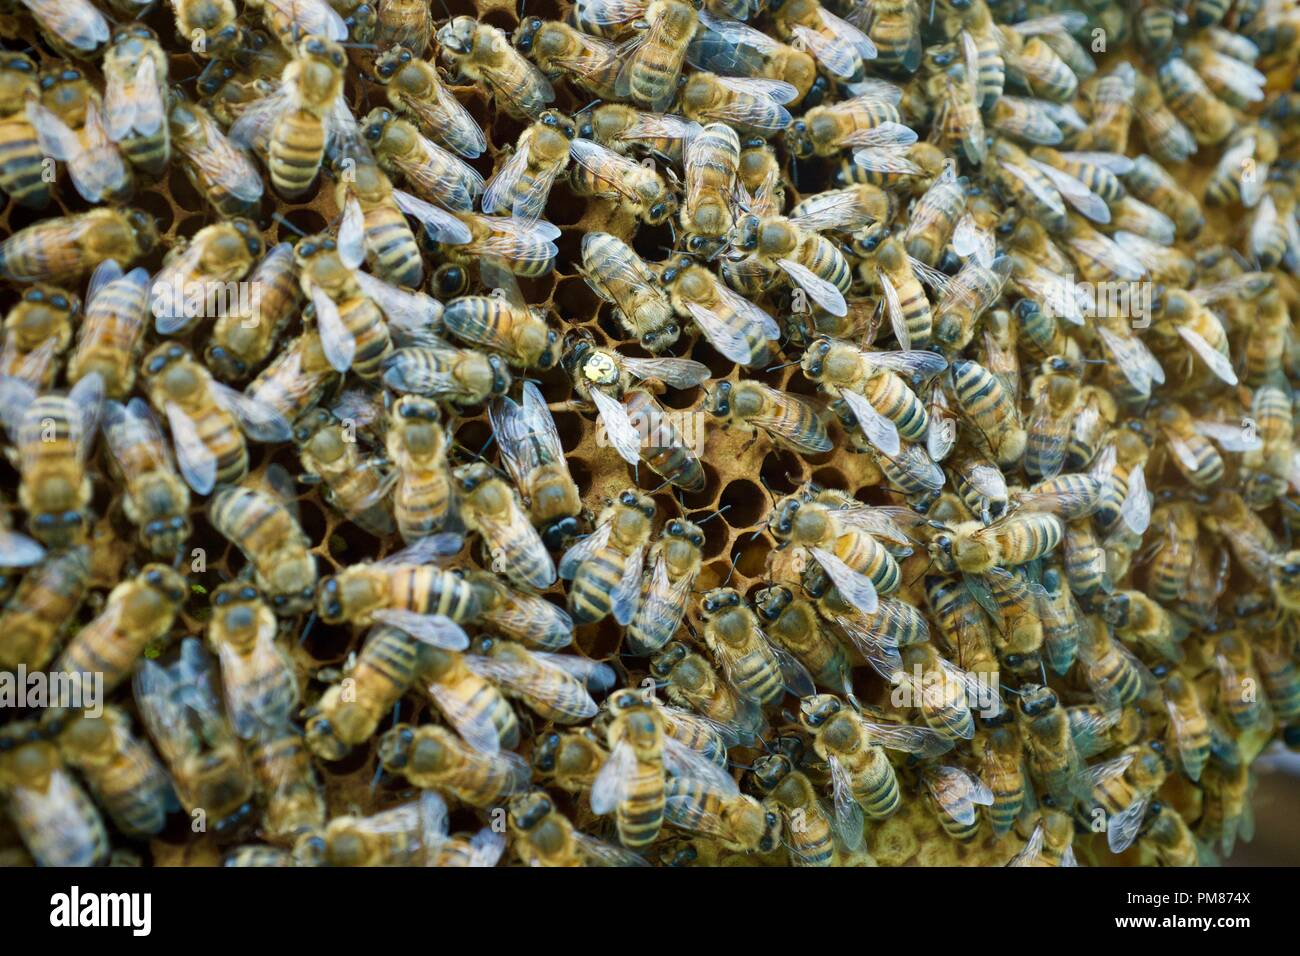 Bees with queen bee - Stock Image